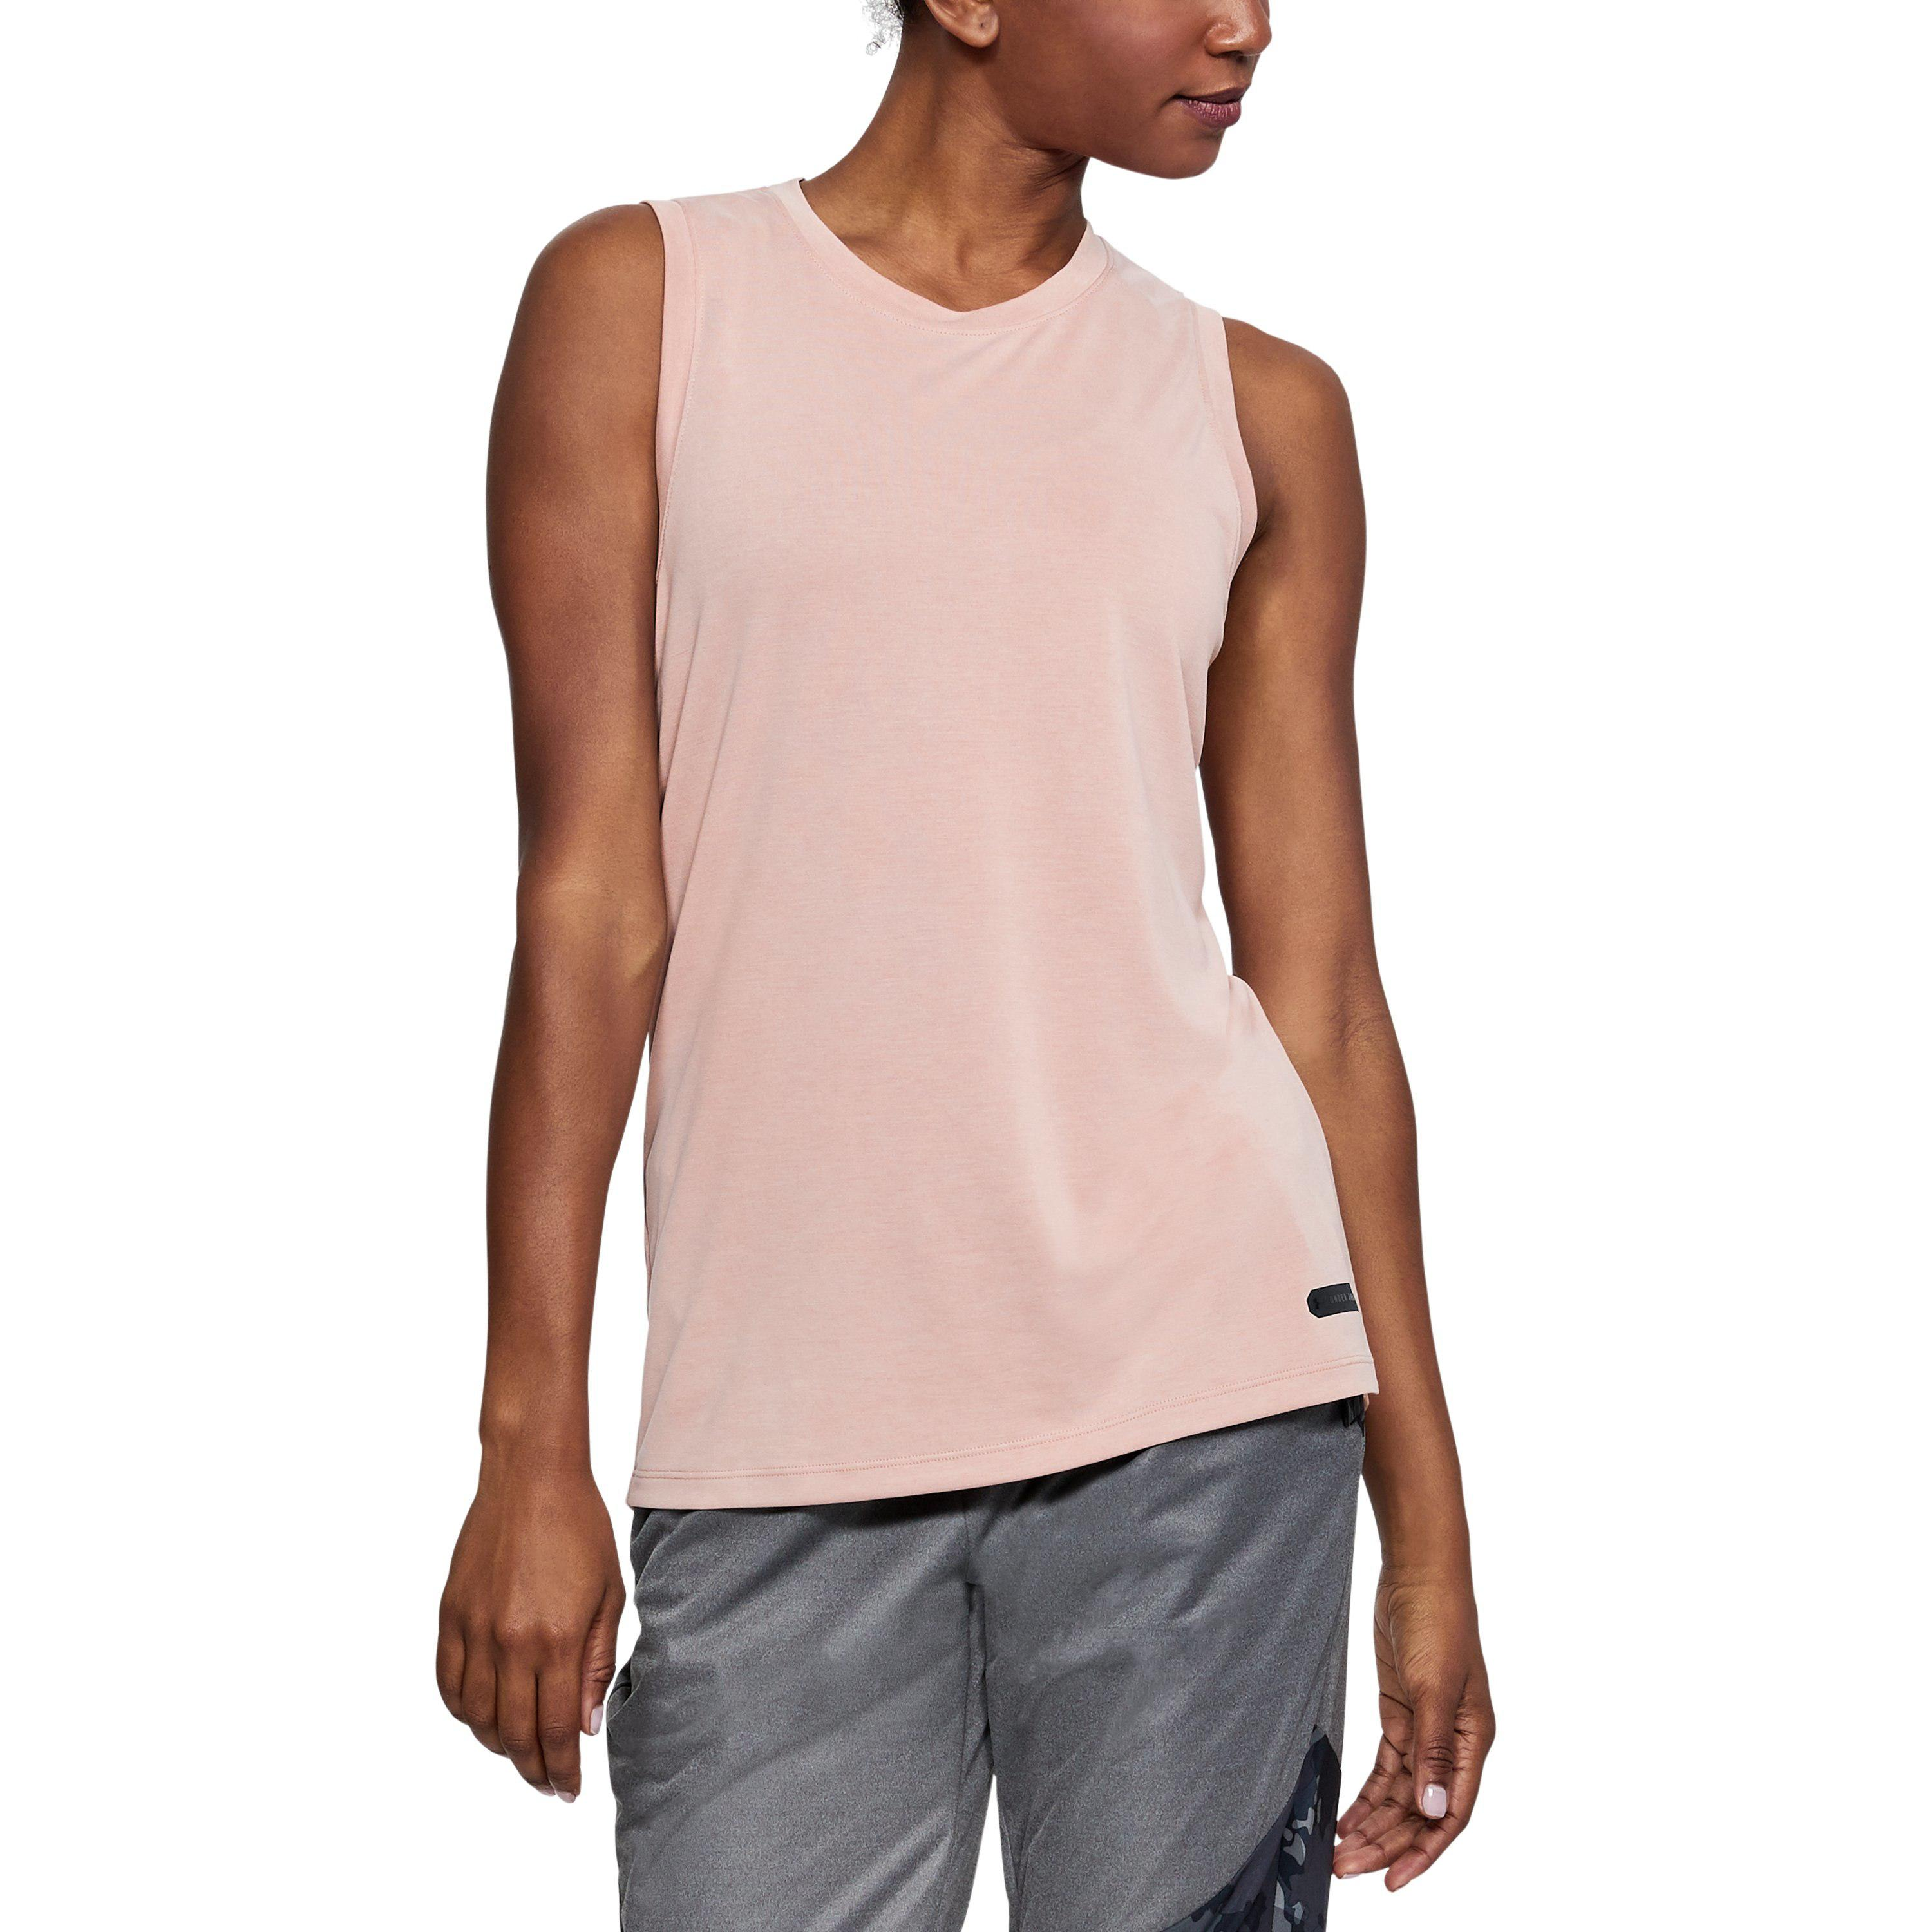 c6c88896d1 Under Armour Women's Ua Unstoppable Muscle Tank in Pink - Lyst